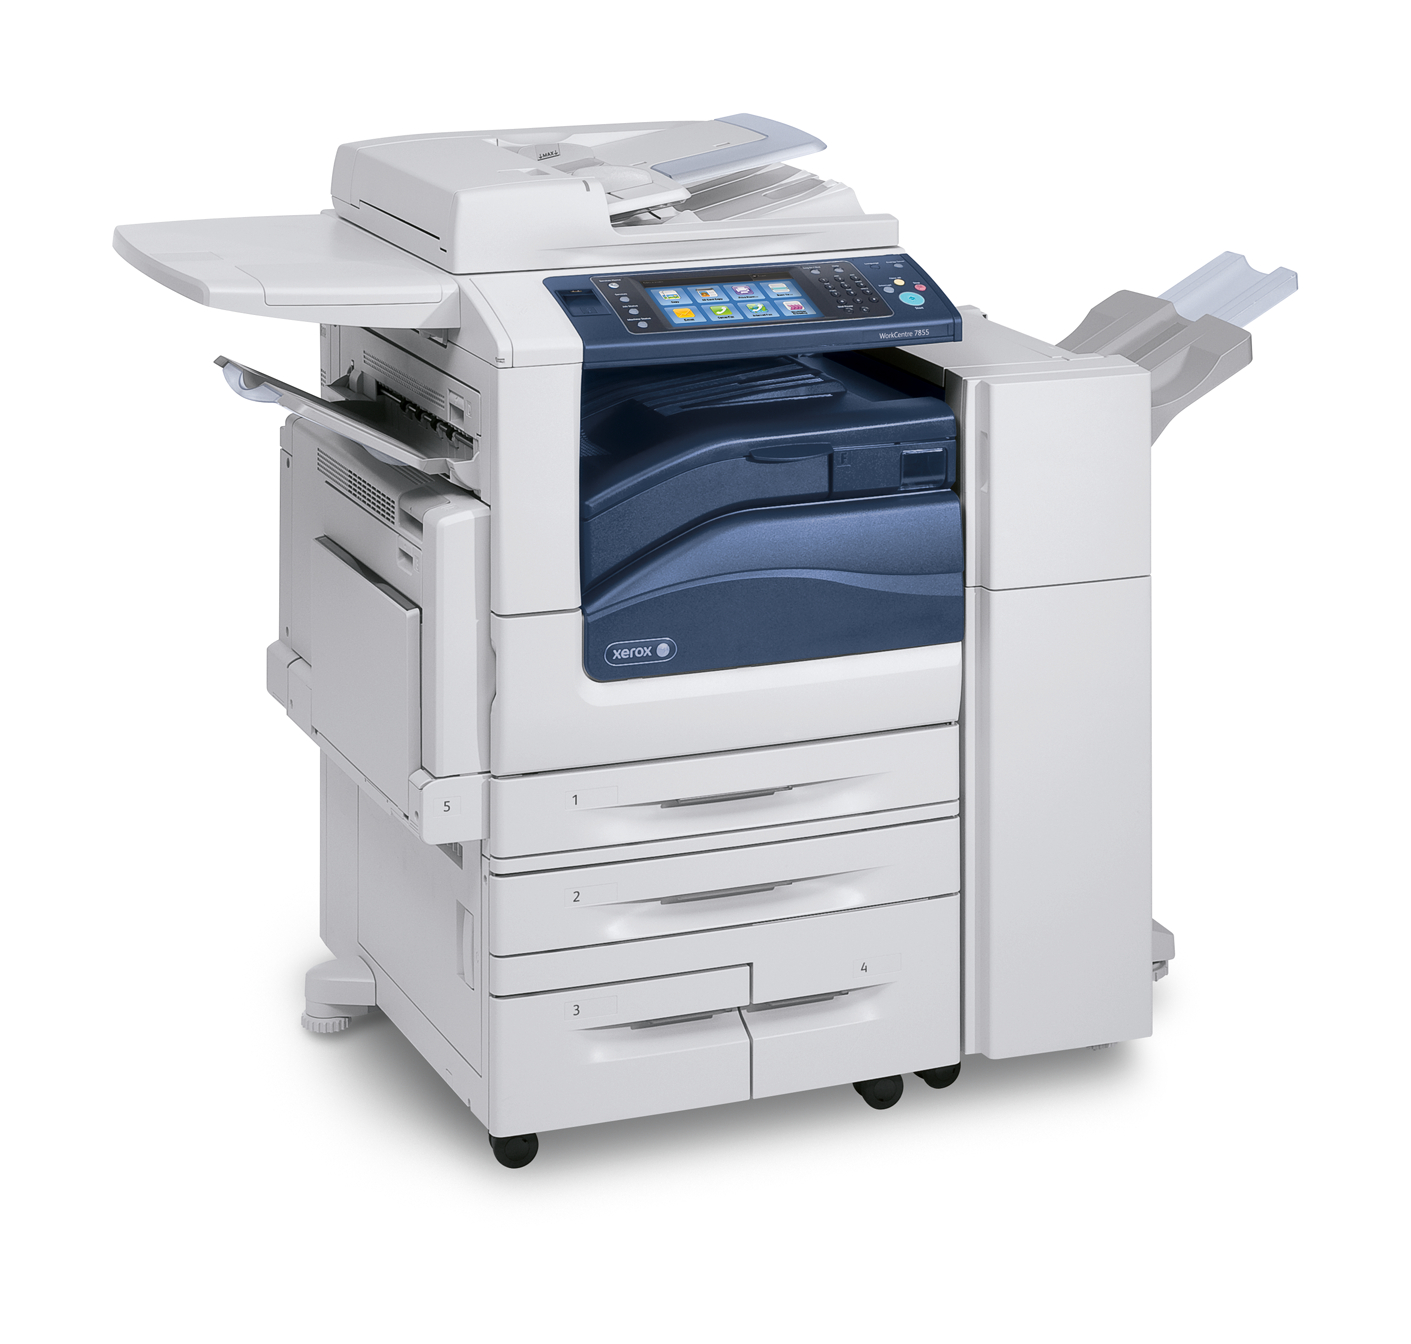 7845 xerox Copy Machine Sales 56547, 56560, 56561, 56562, 56563